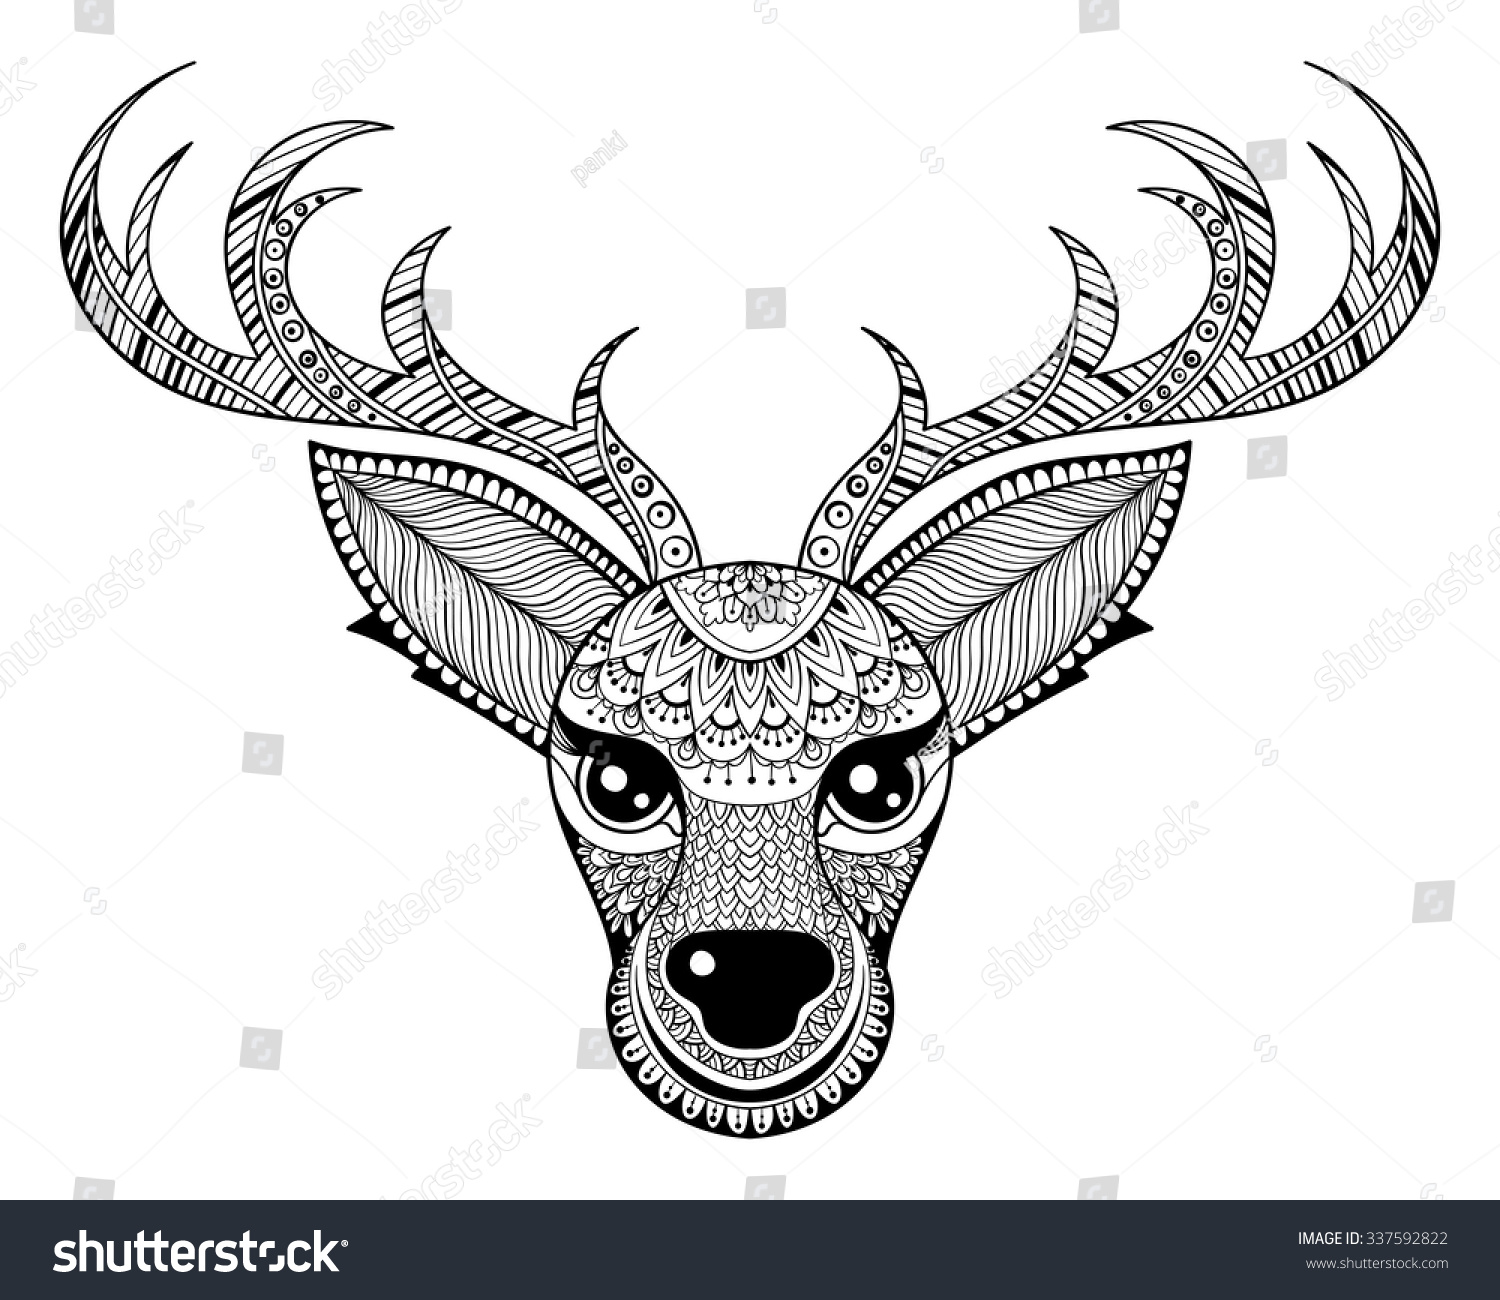 tribal animal coloring pages - photo#36